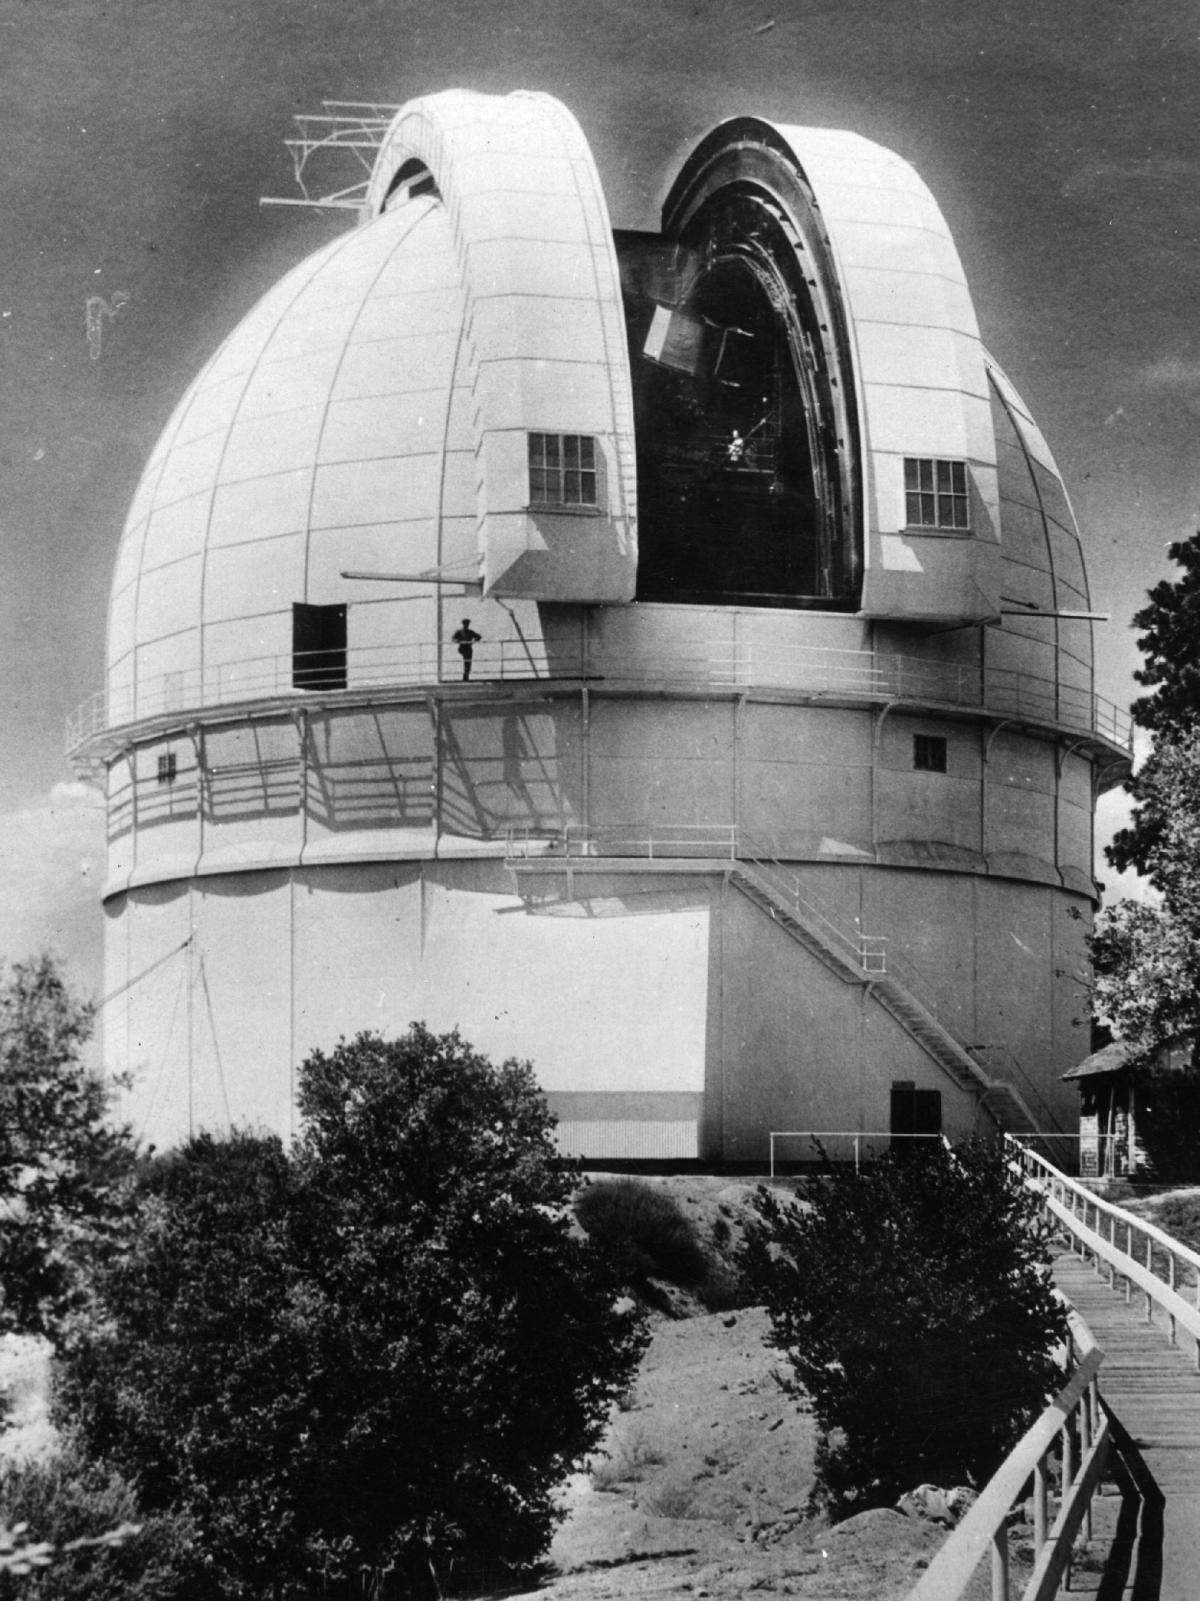 The Hooker telescope dome at the Mount Wilson Observatory, circa 1921.